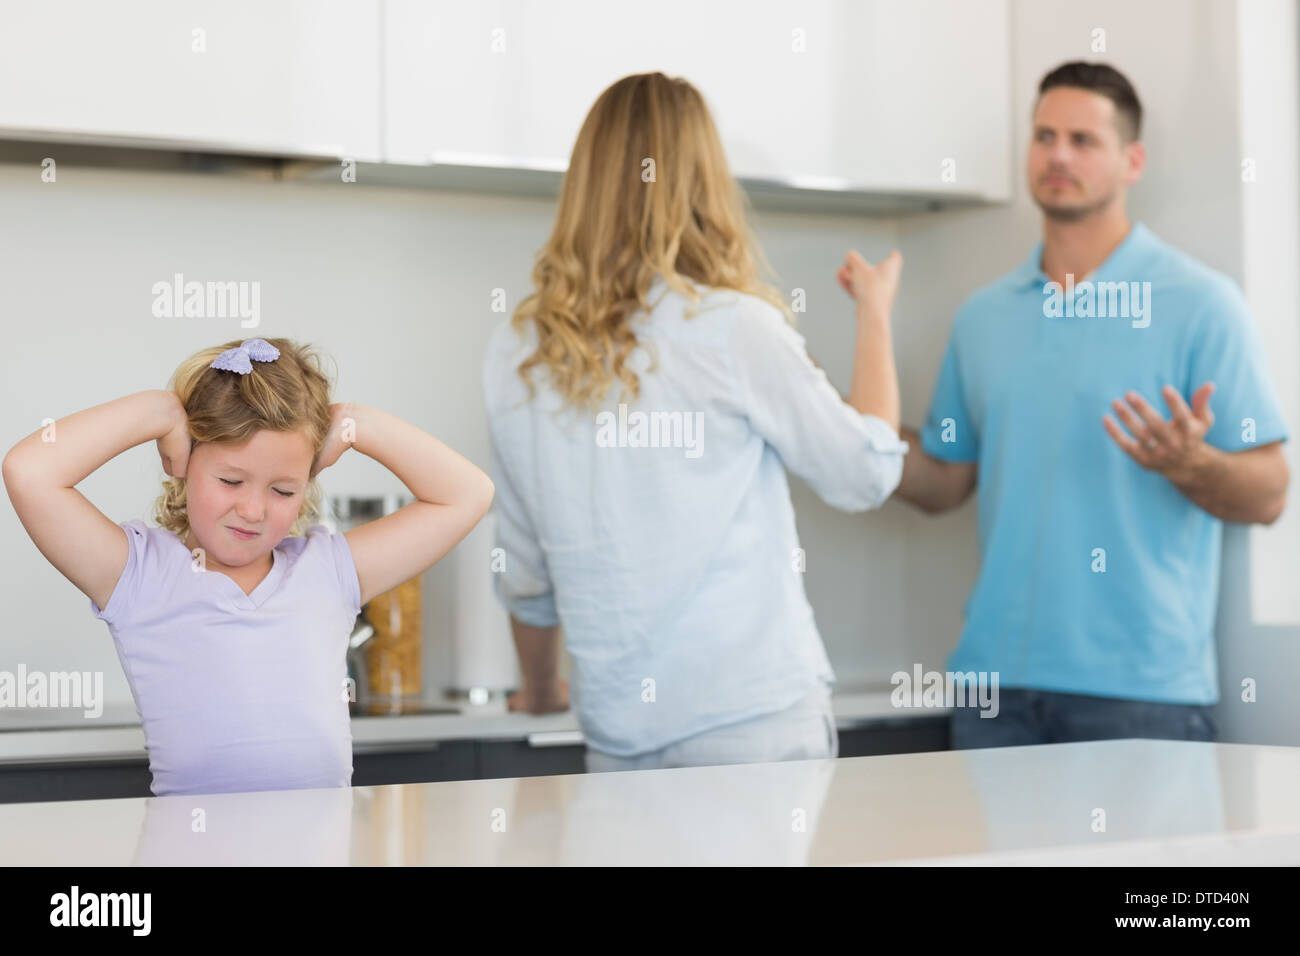 Girl covering ears while parents arguing - Stock Image